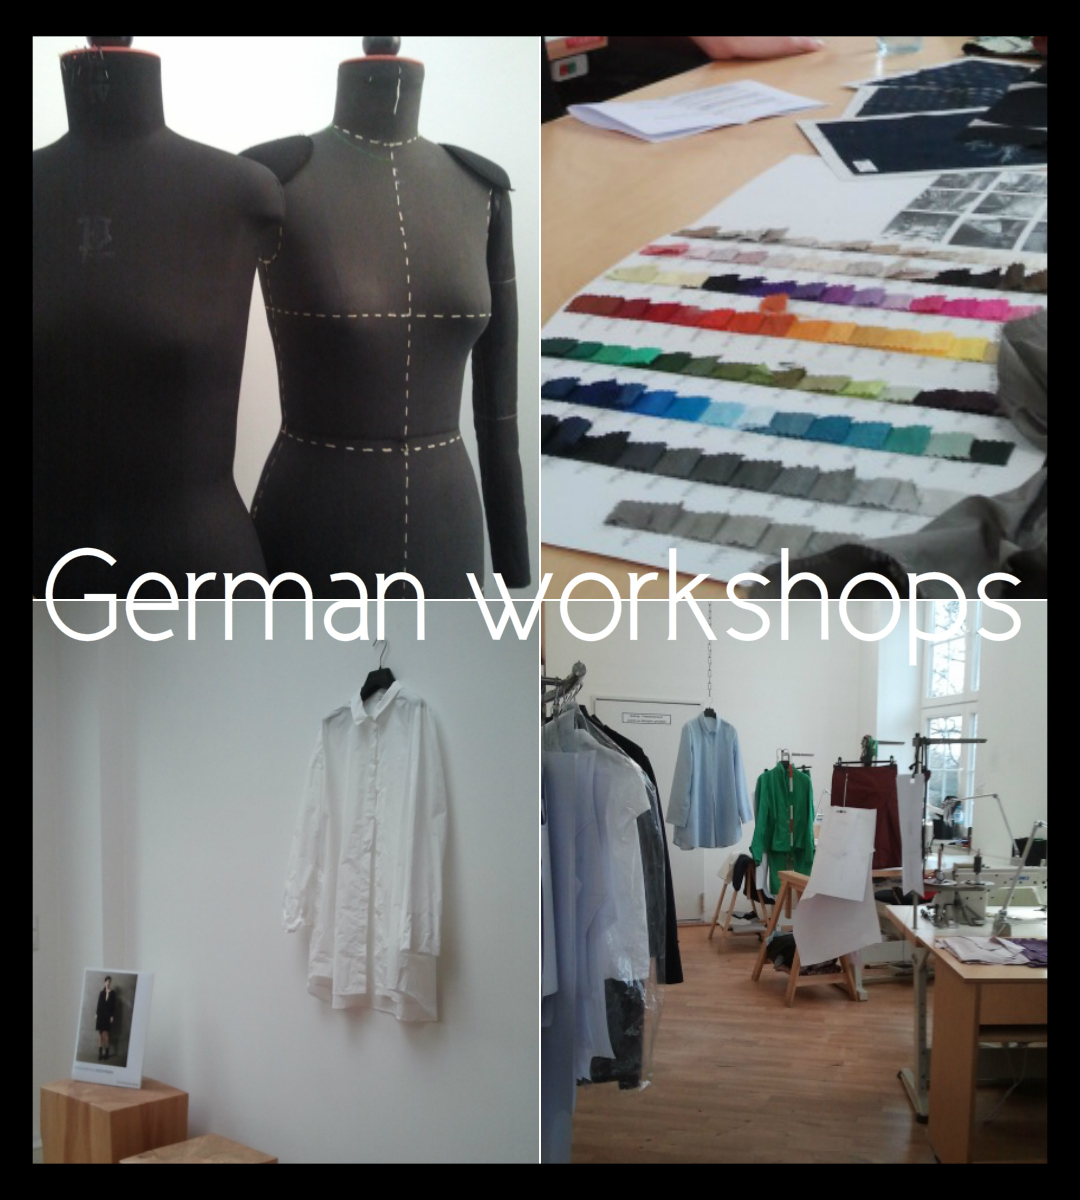 Irina Rohpeter, German workshops, Mariposa Fashion Blog, Ateliers- 12